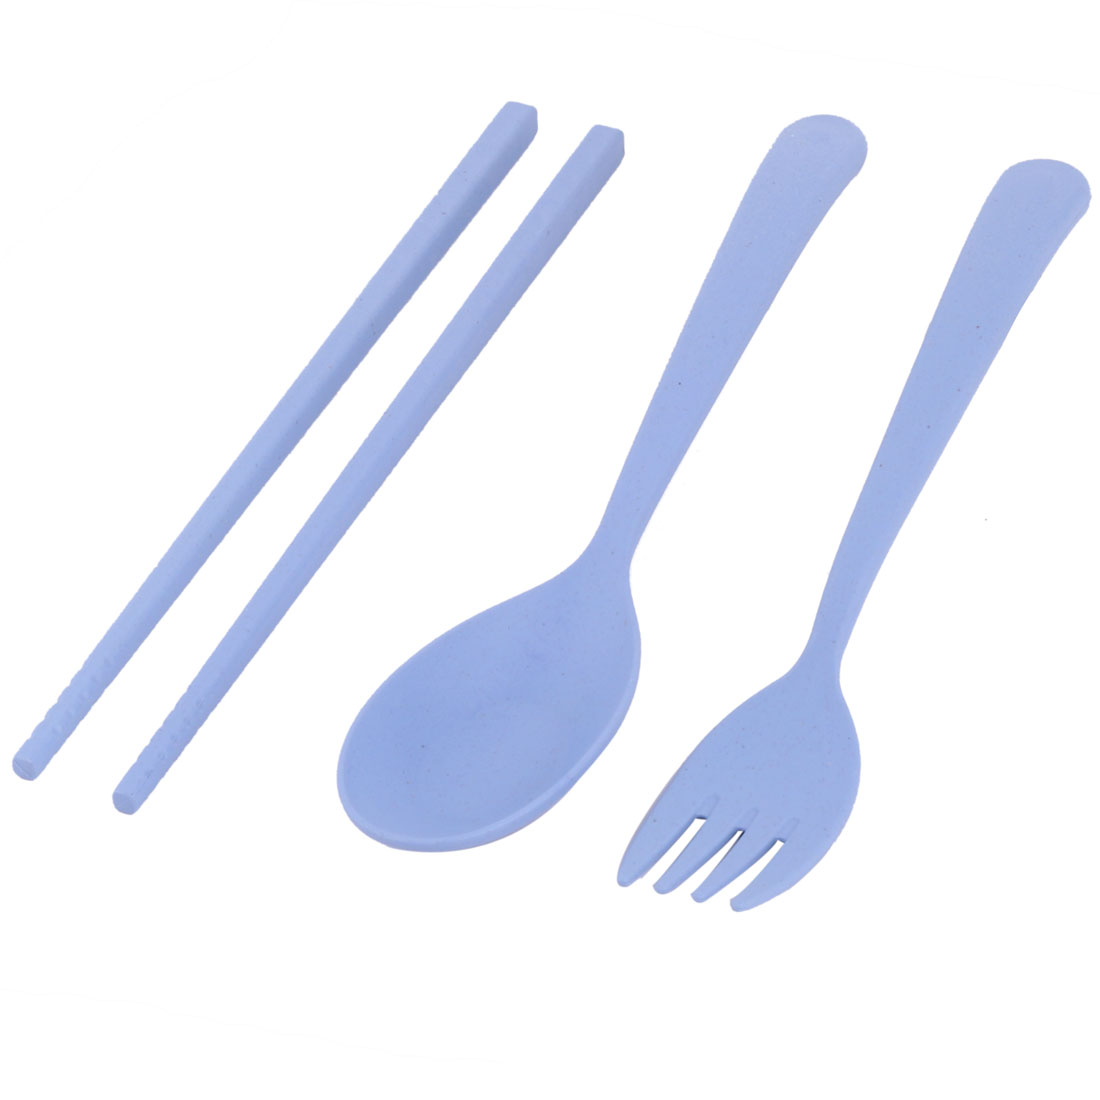 Home Outdoor Plastic Dinner Spoon Chopsticks Fork Holder Box Tableware Blue Set